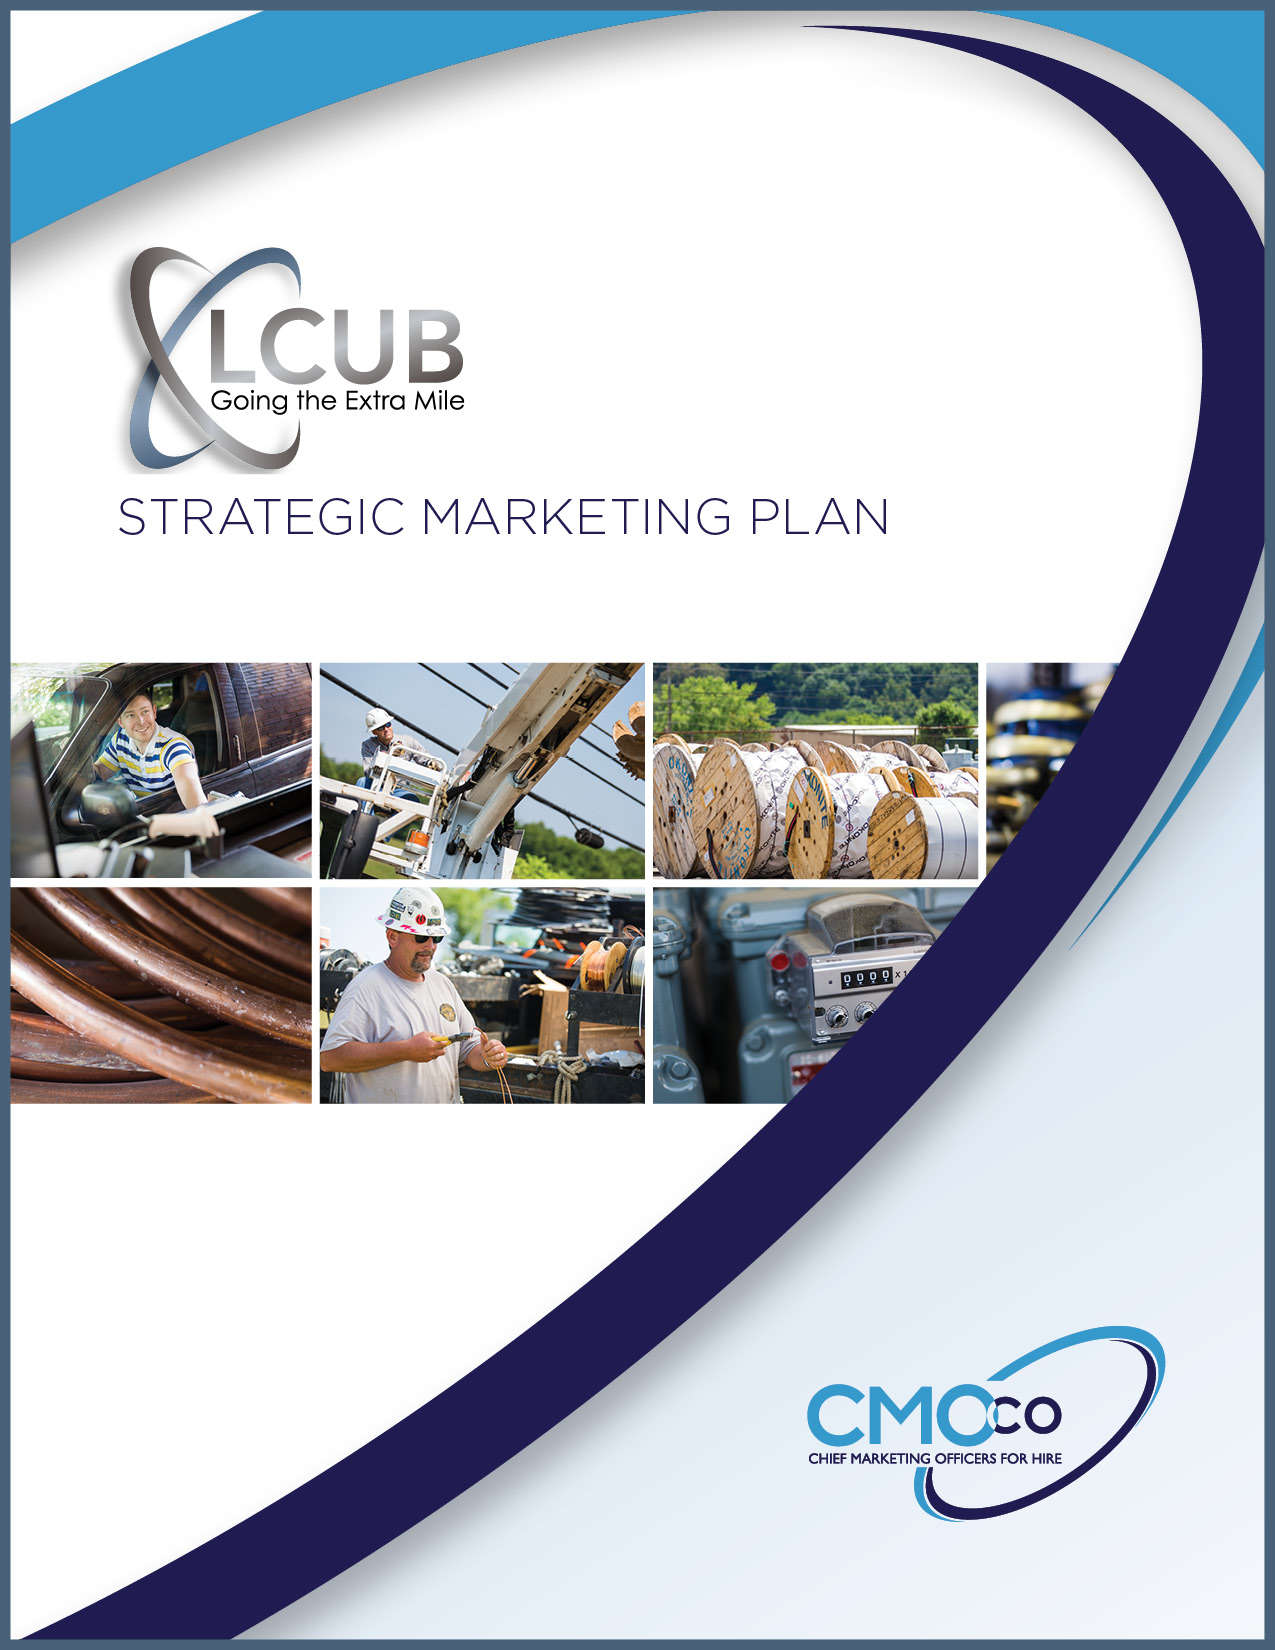 The utilities industry calls for a unique set of marketing strategies to prepare for customer relationship management, publicity and community outreach.